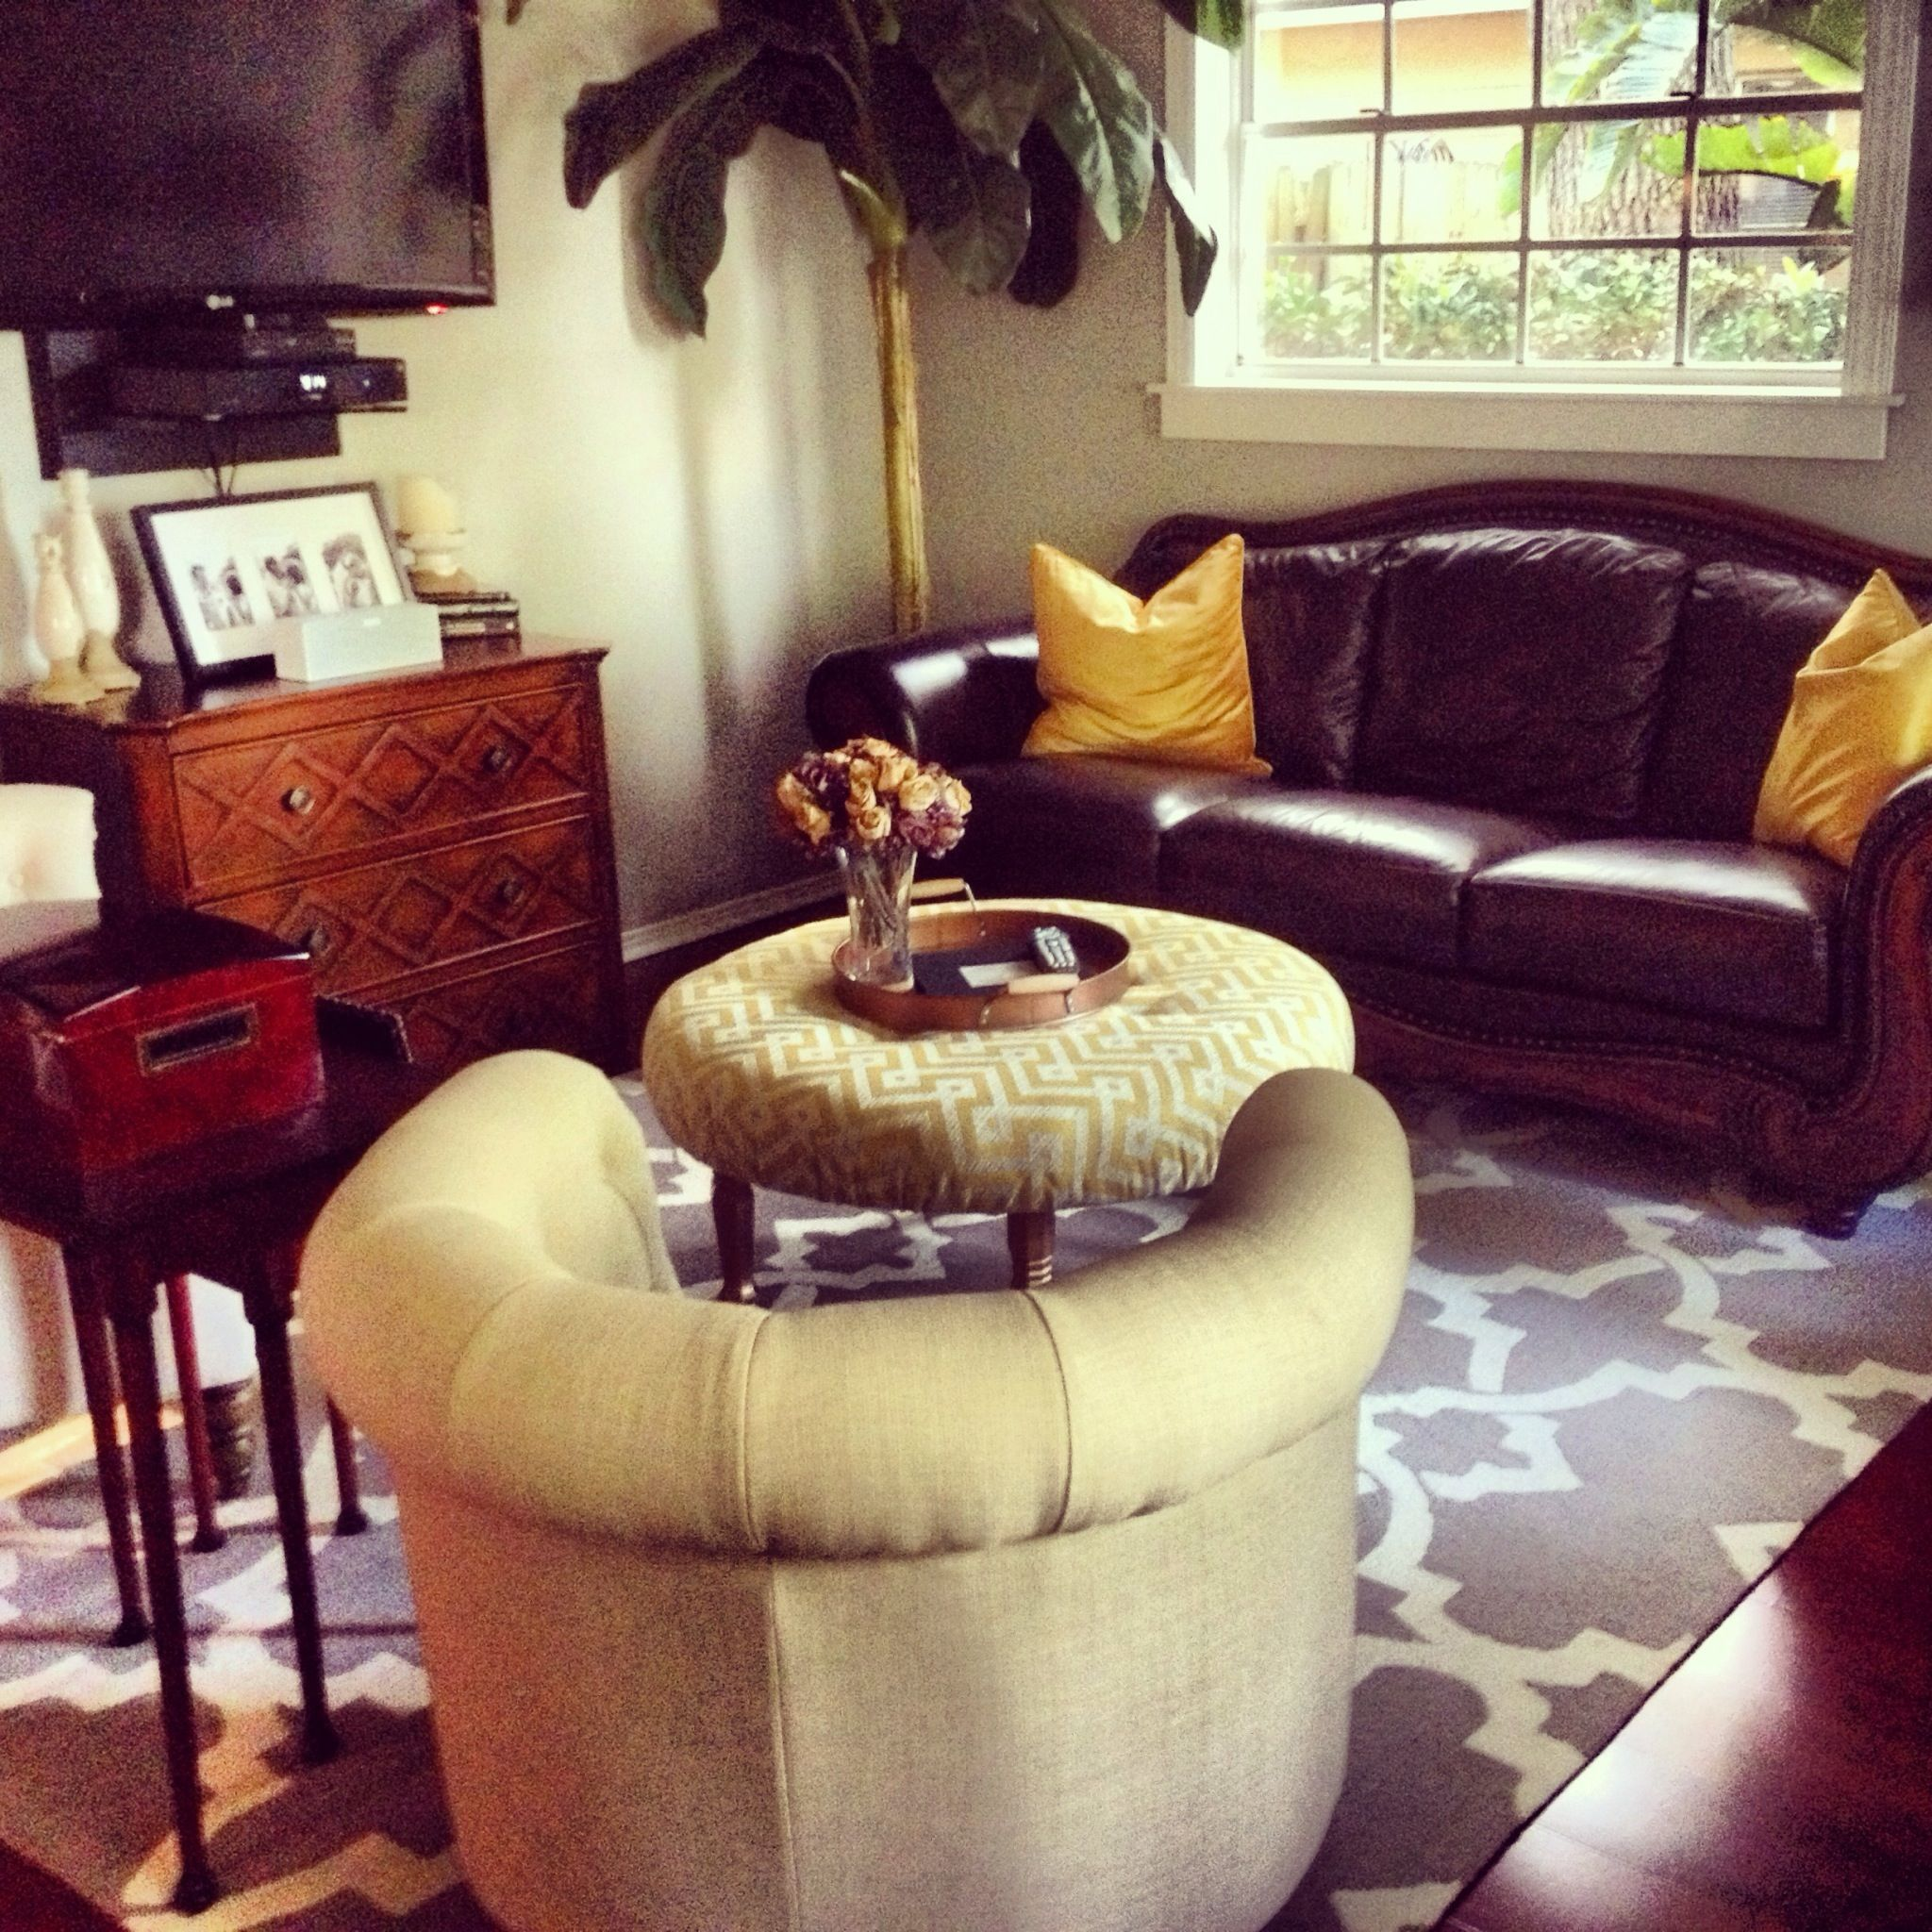 Gray Trellis Rug, Yellow Chevron Ottoman, And Brown Leather Couch